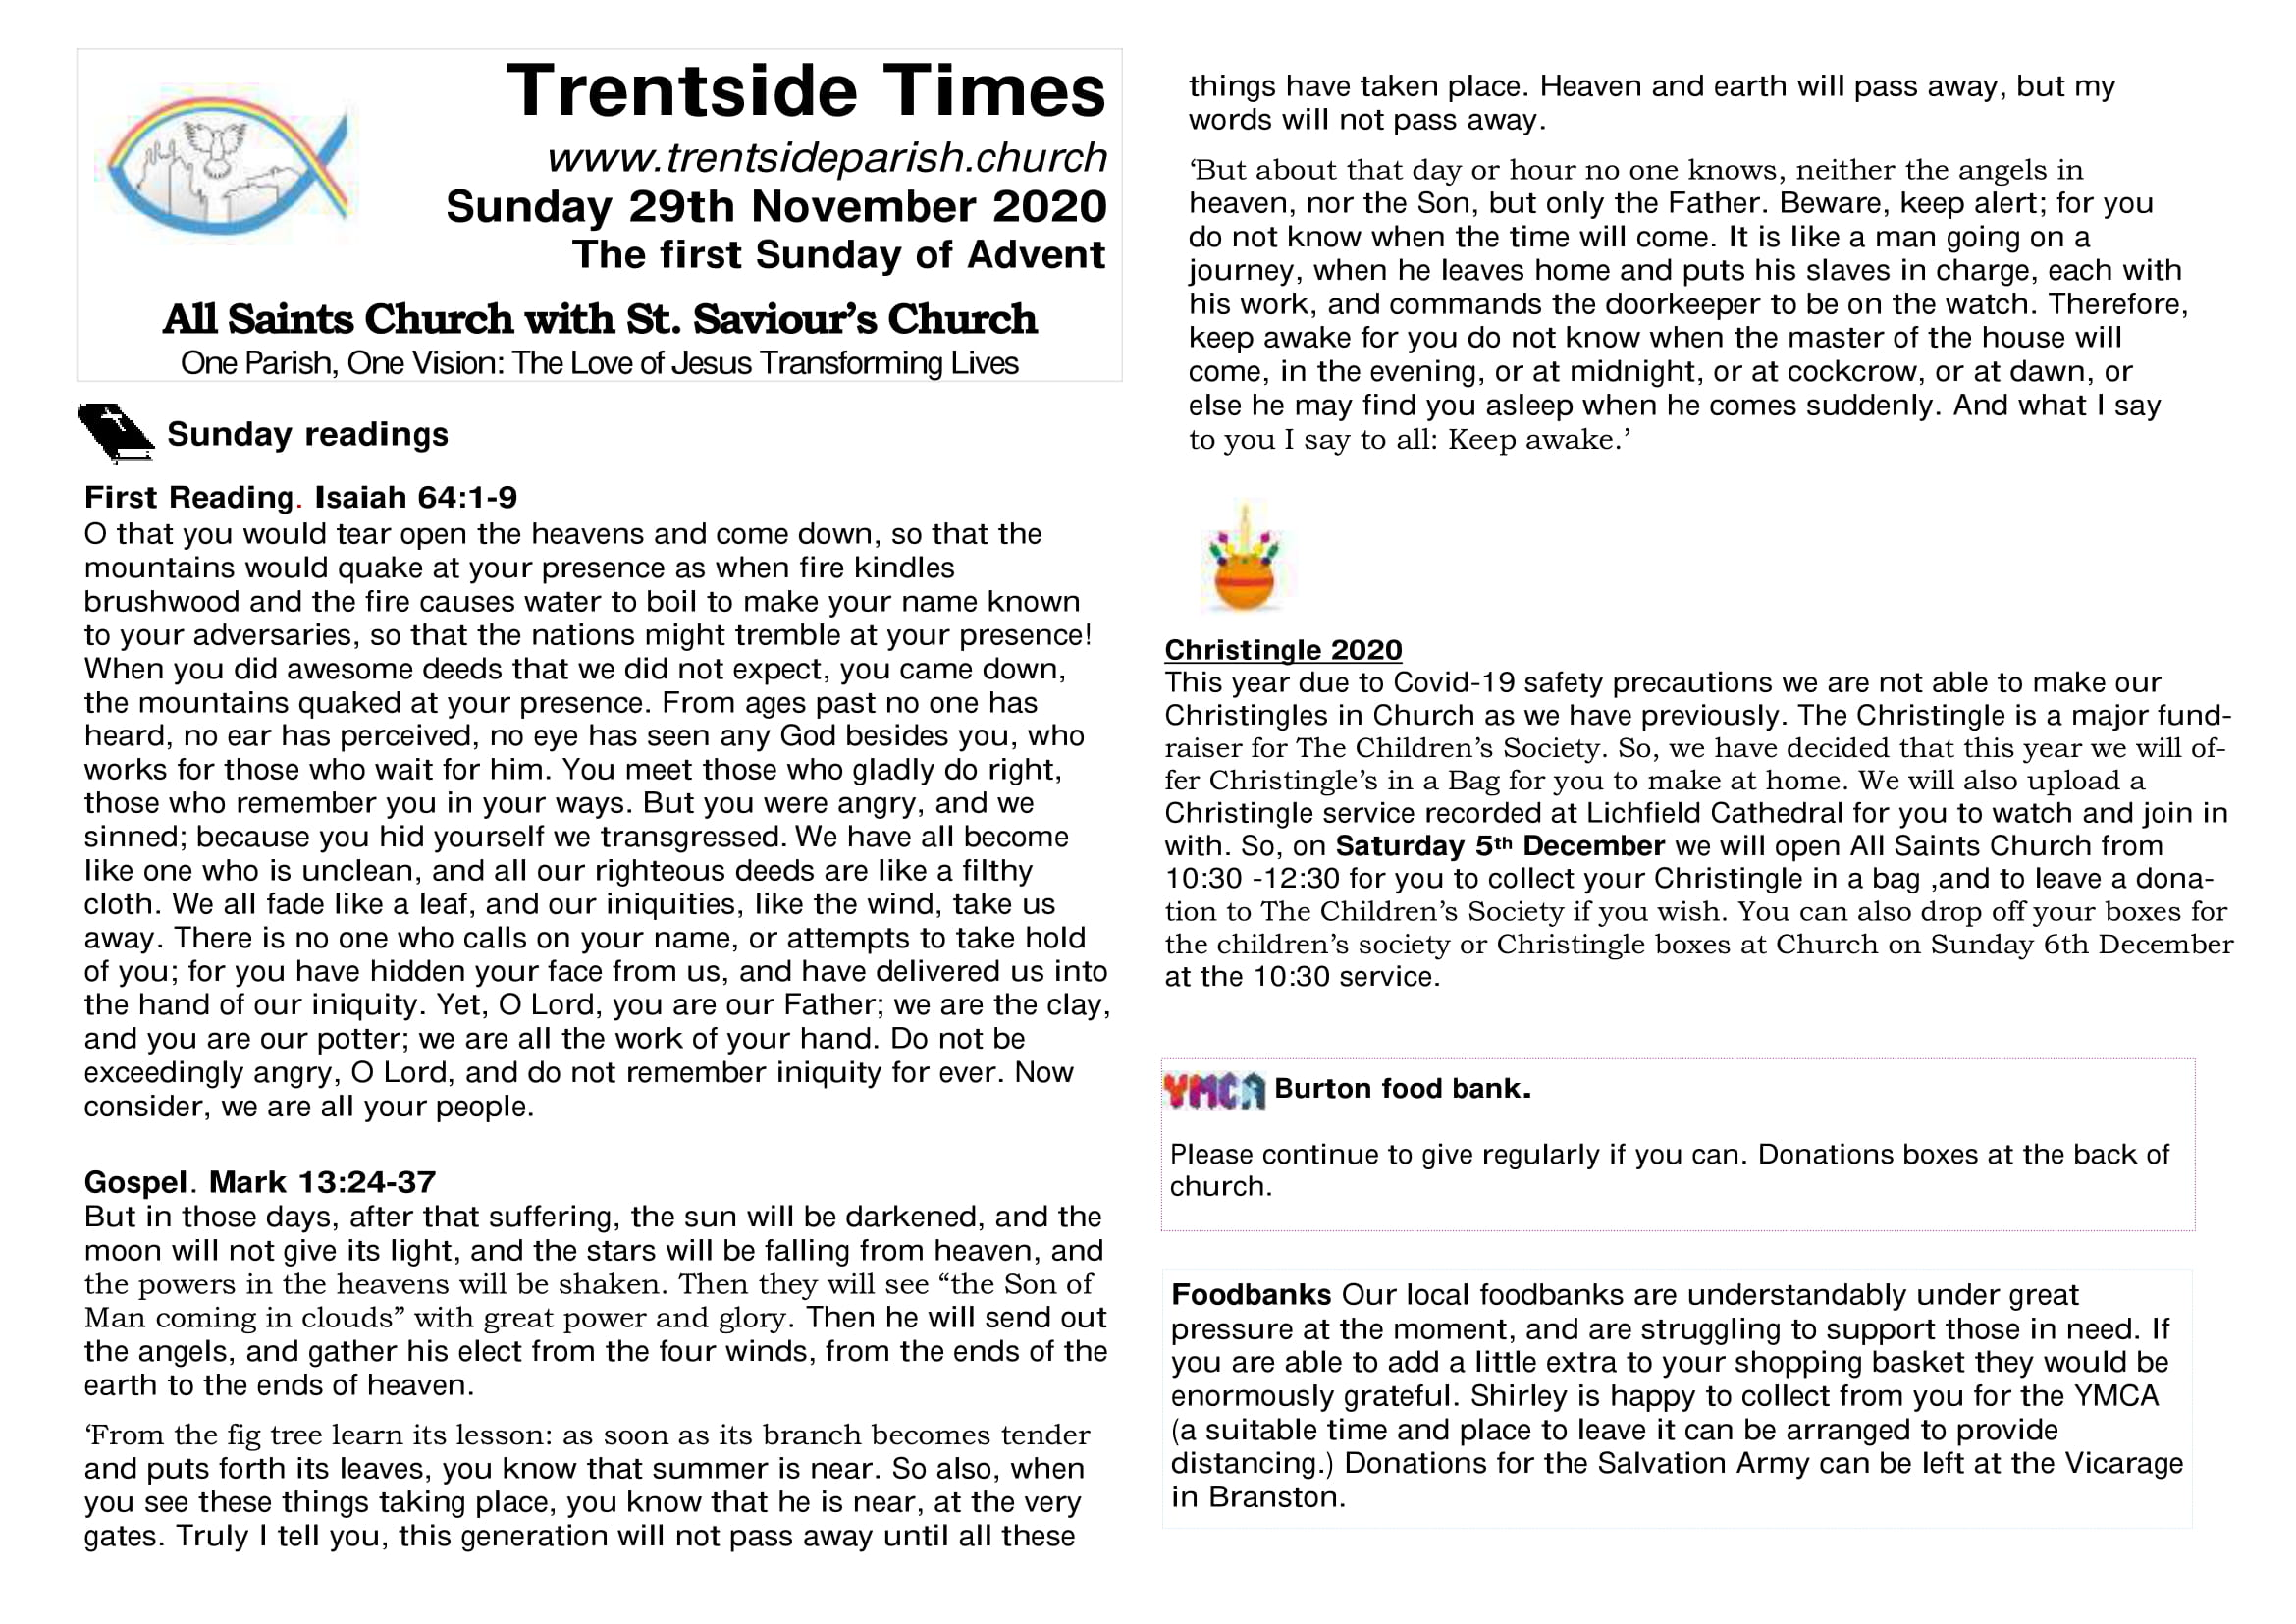 29th November Trentside Notices-page 1